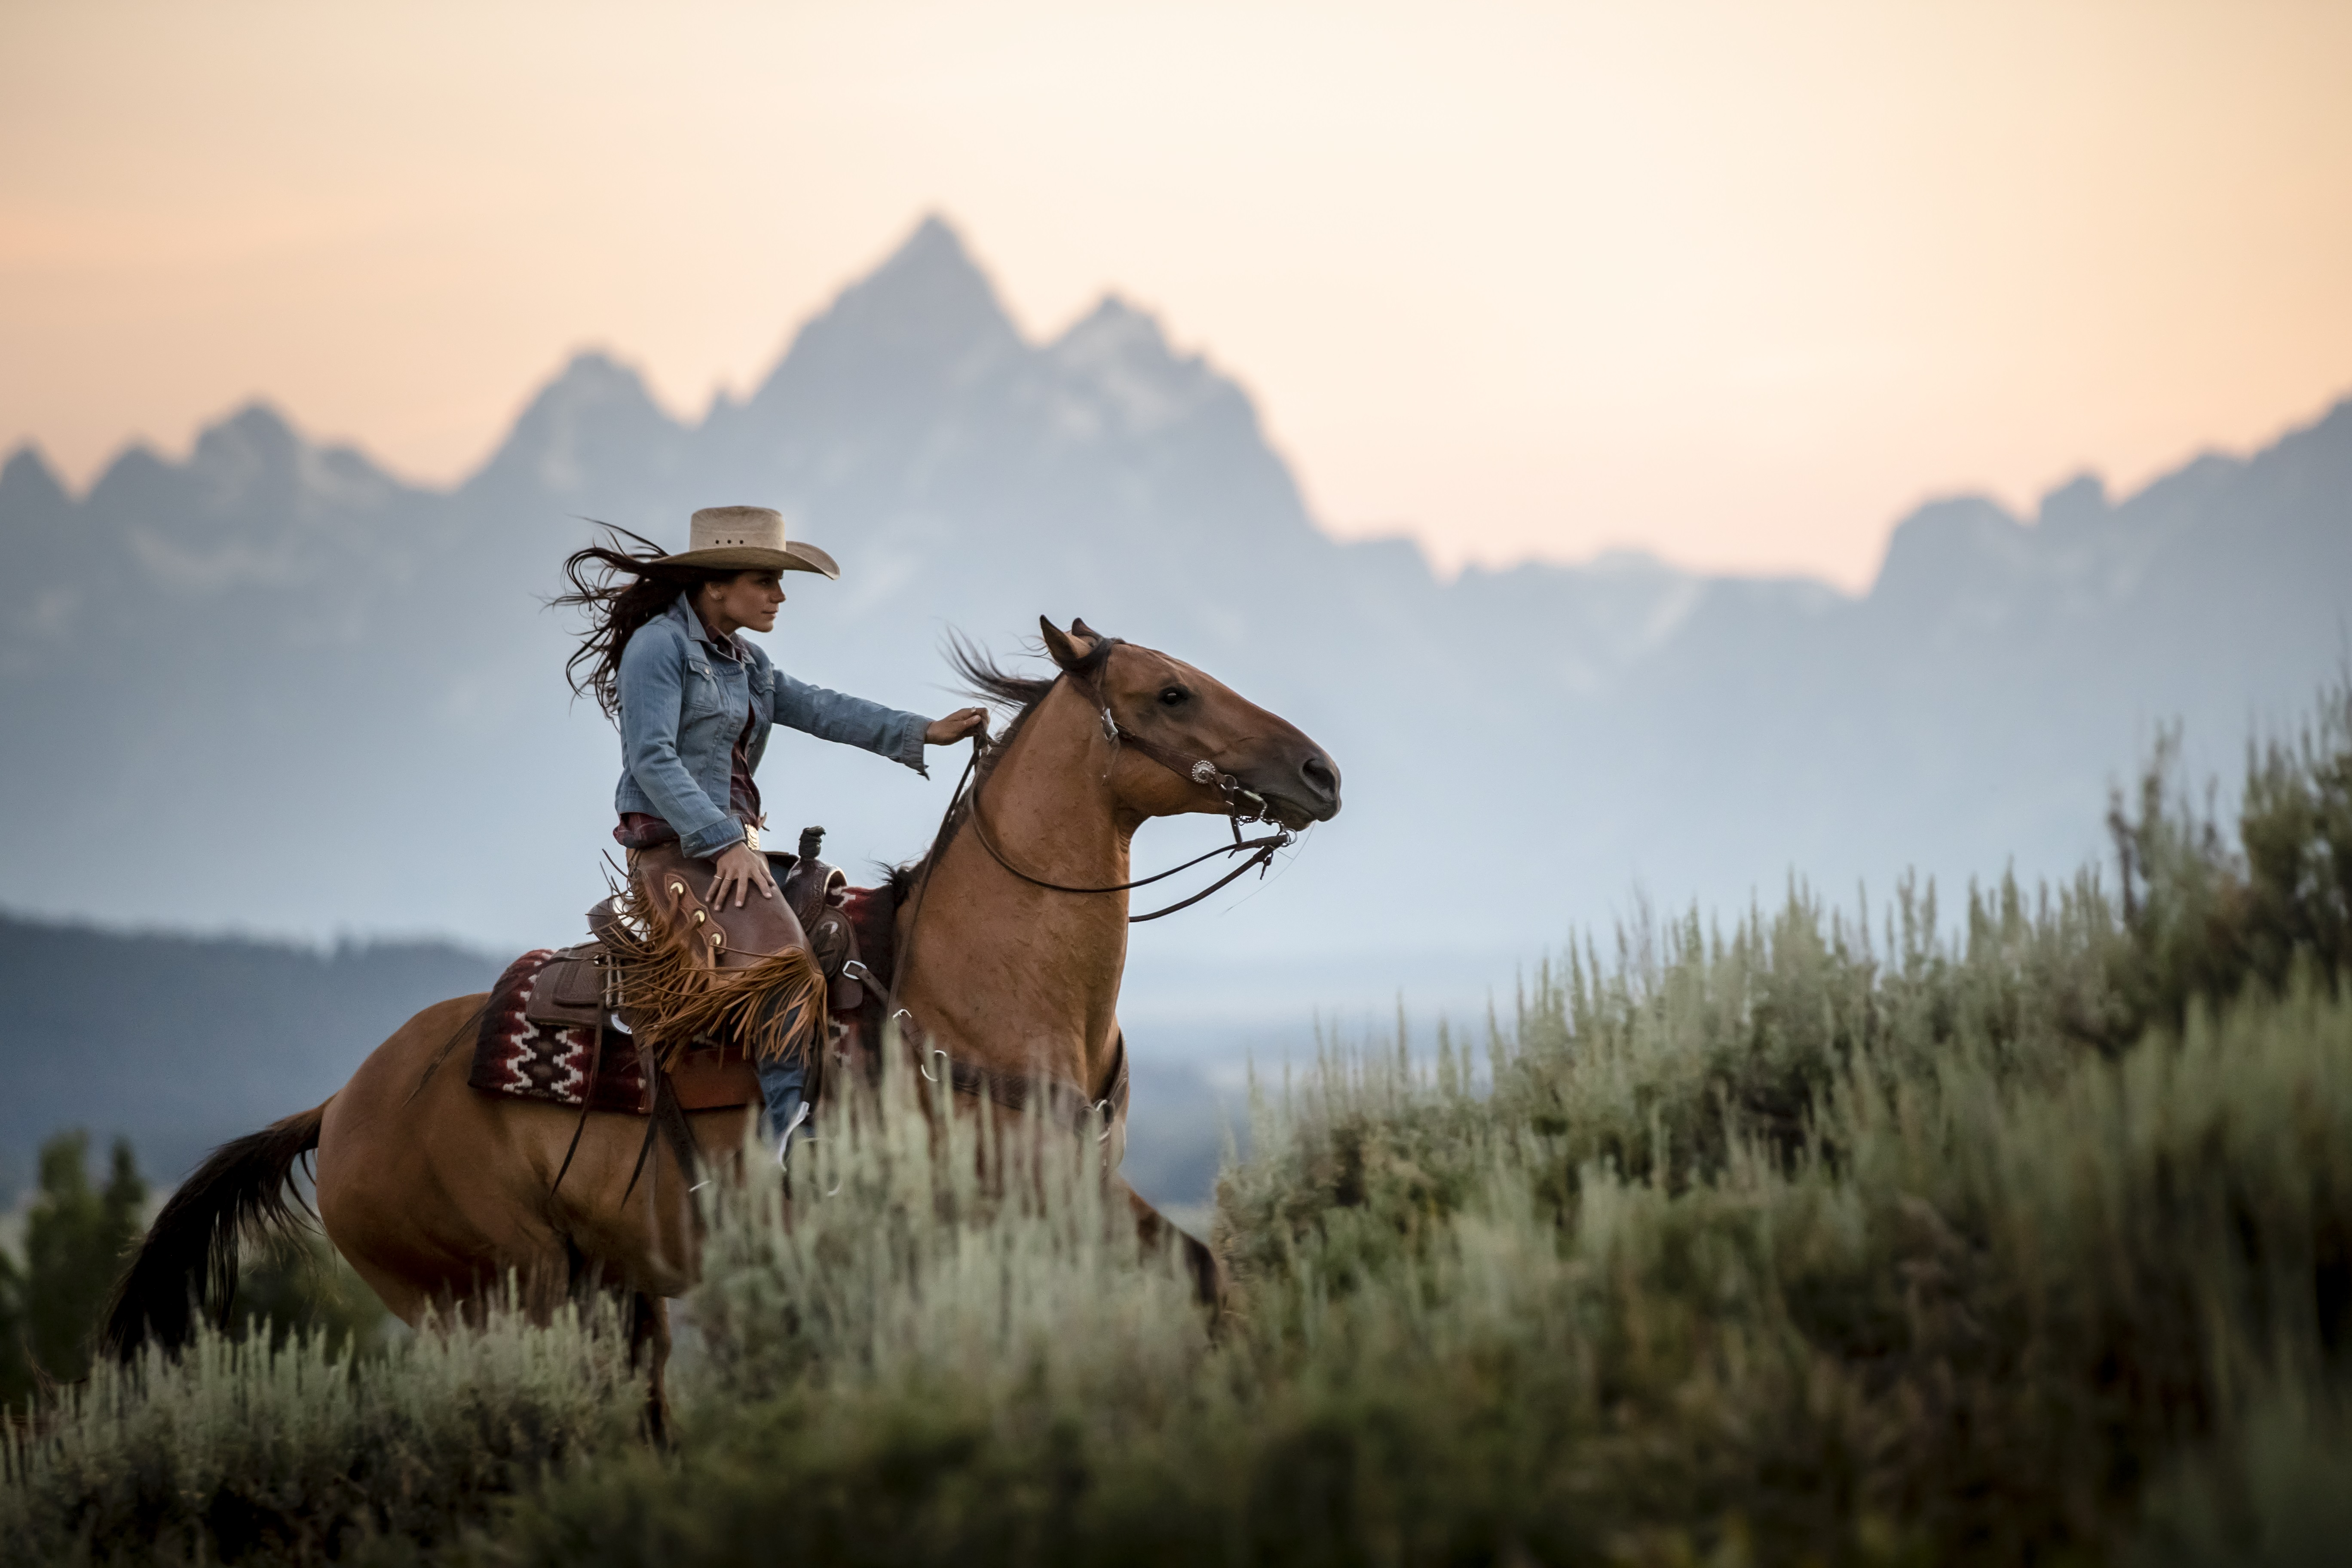 Tetons_Cowgirl riding horse